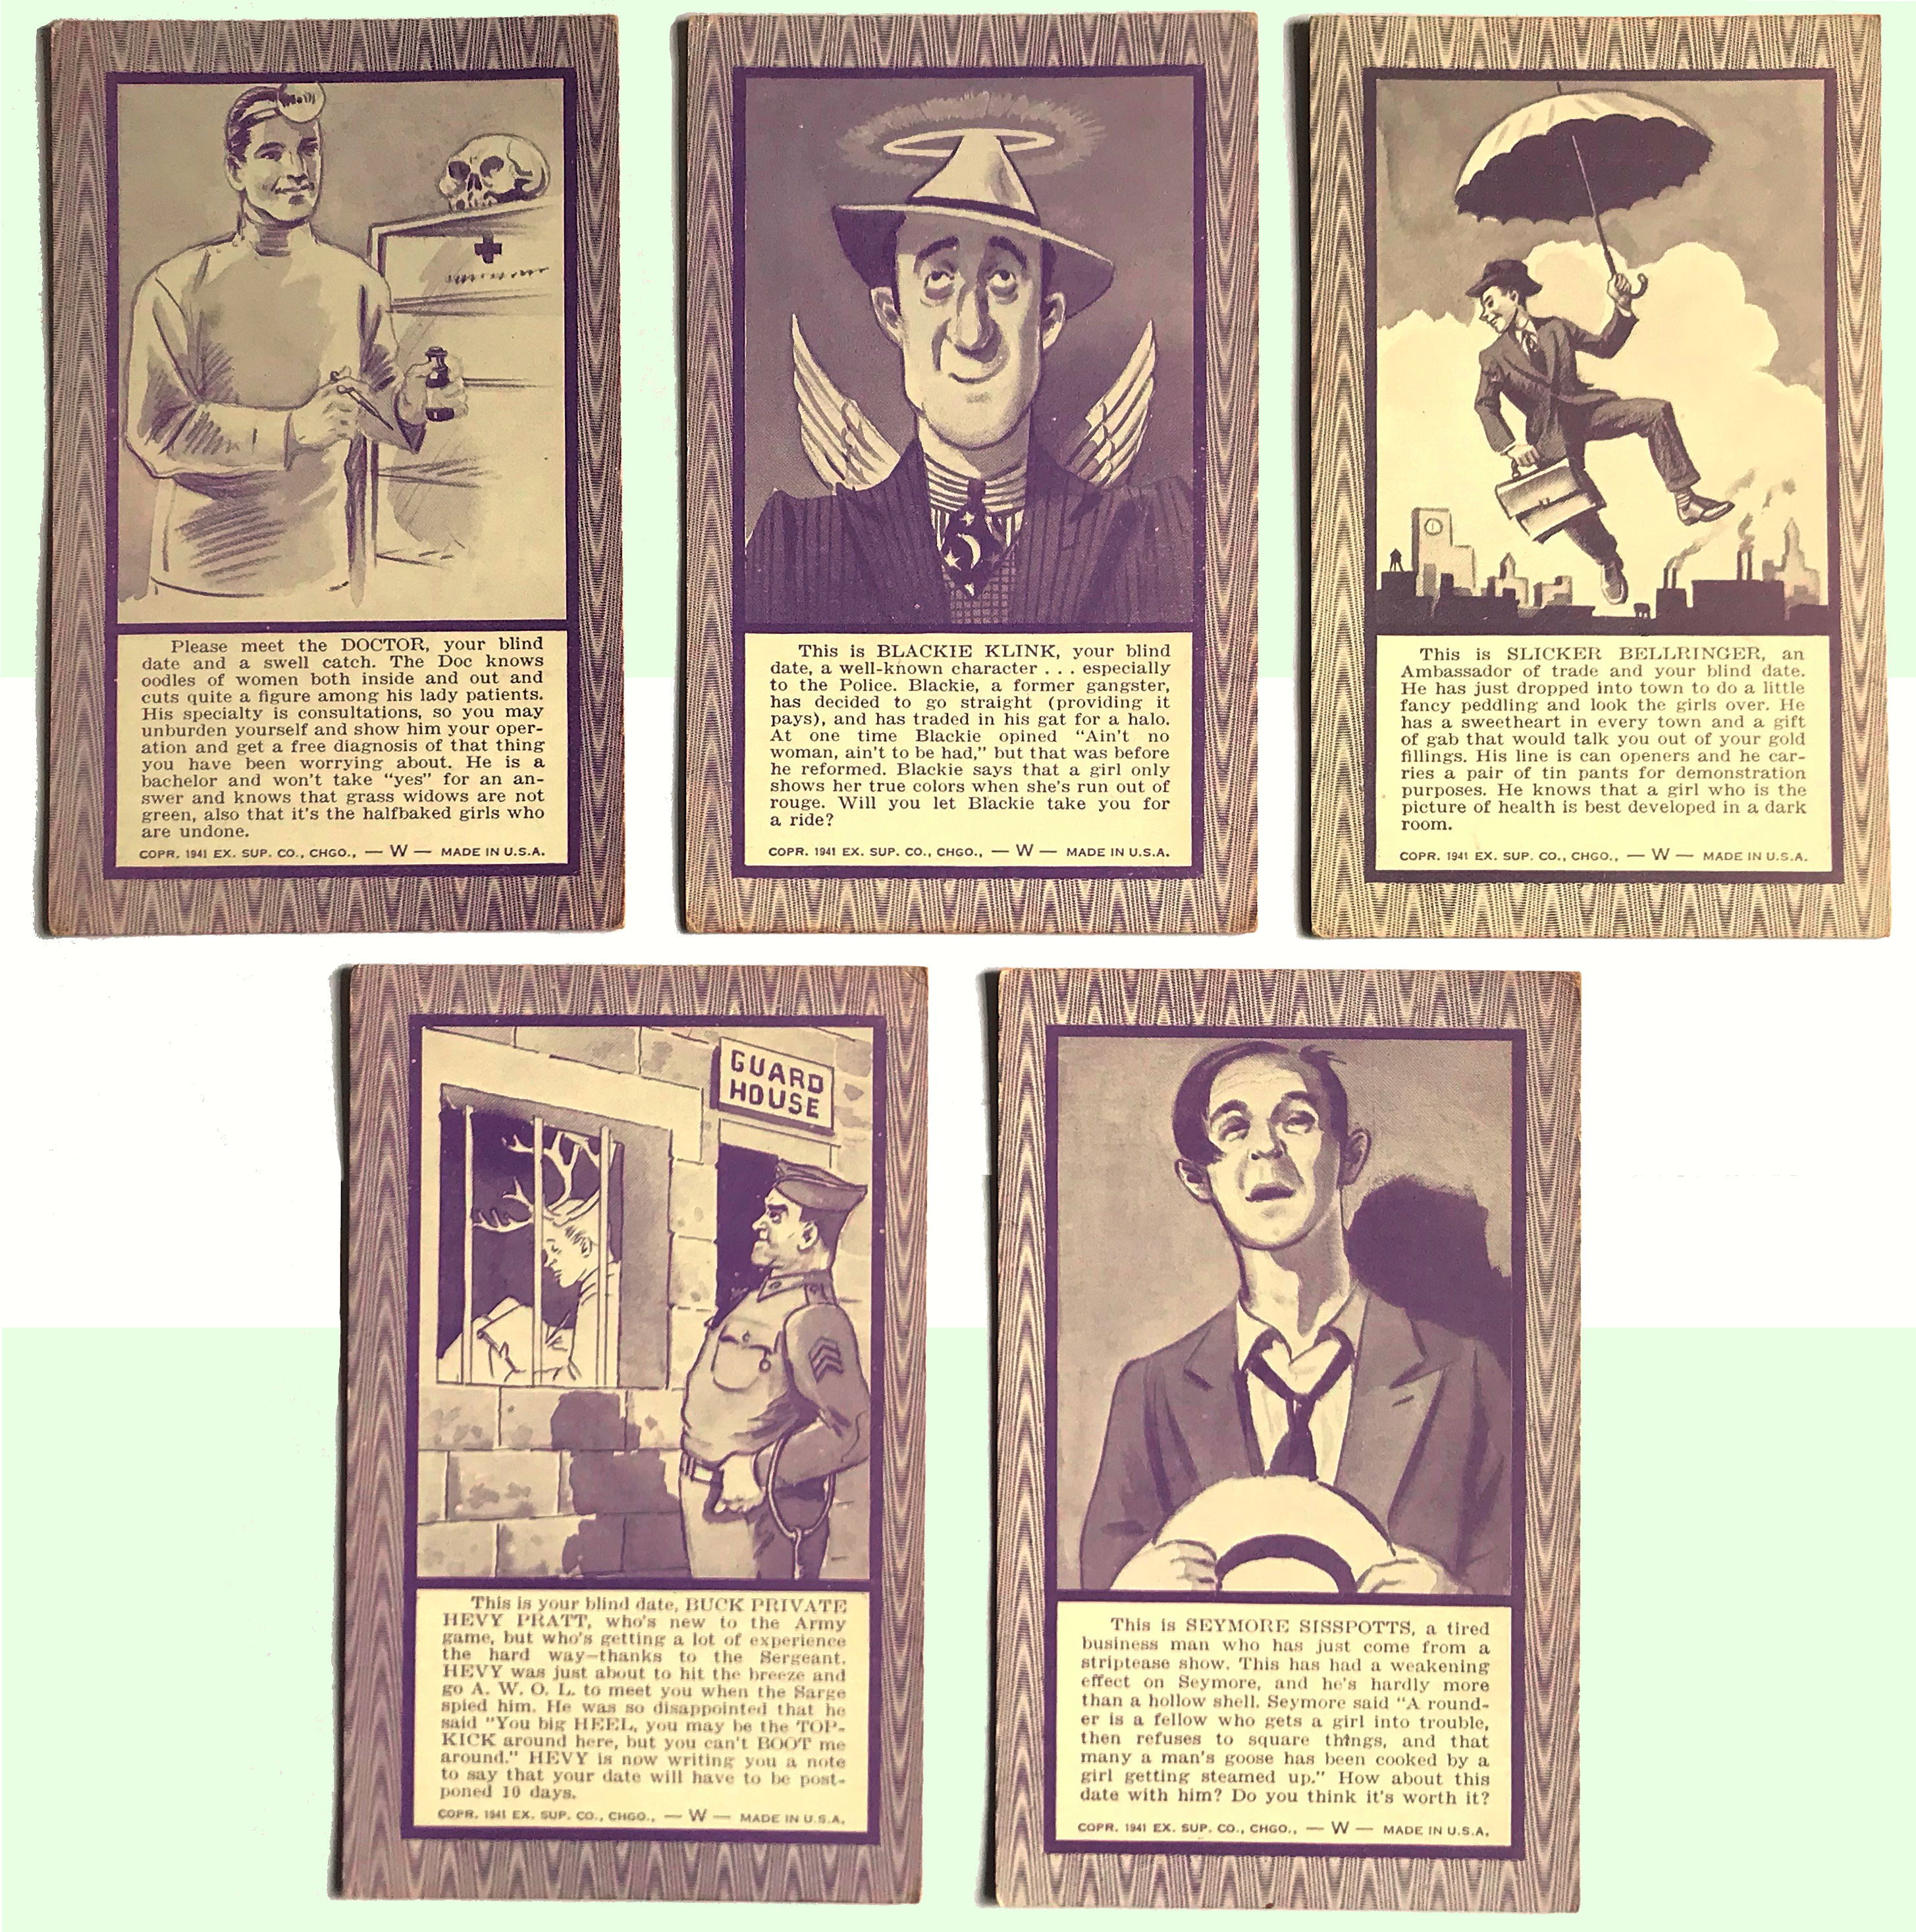 Exhibit Supply Co. cards